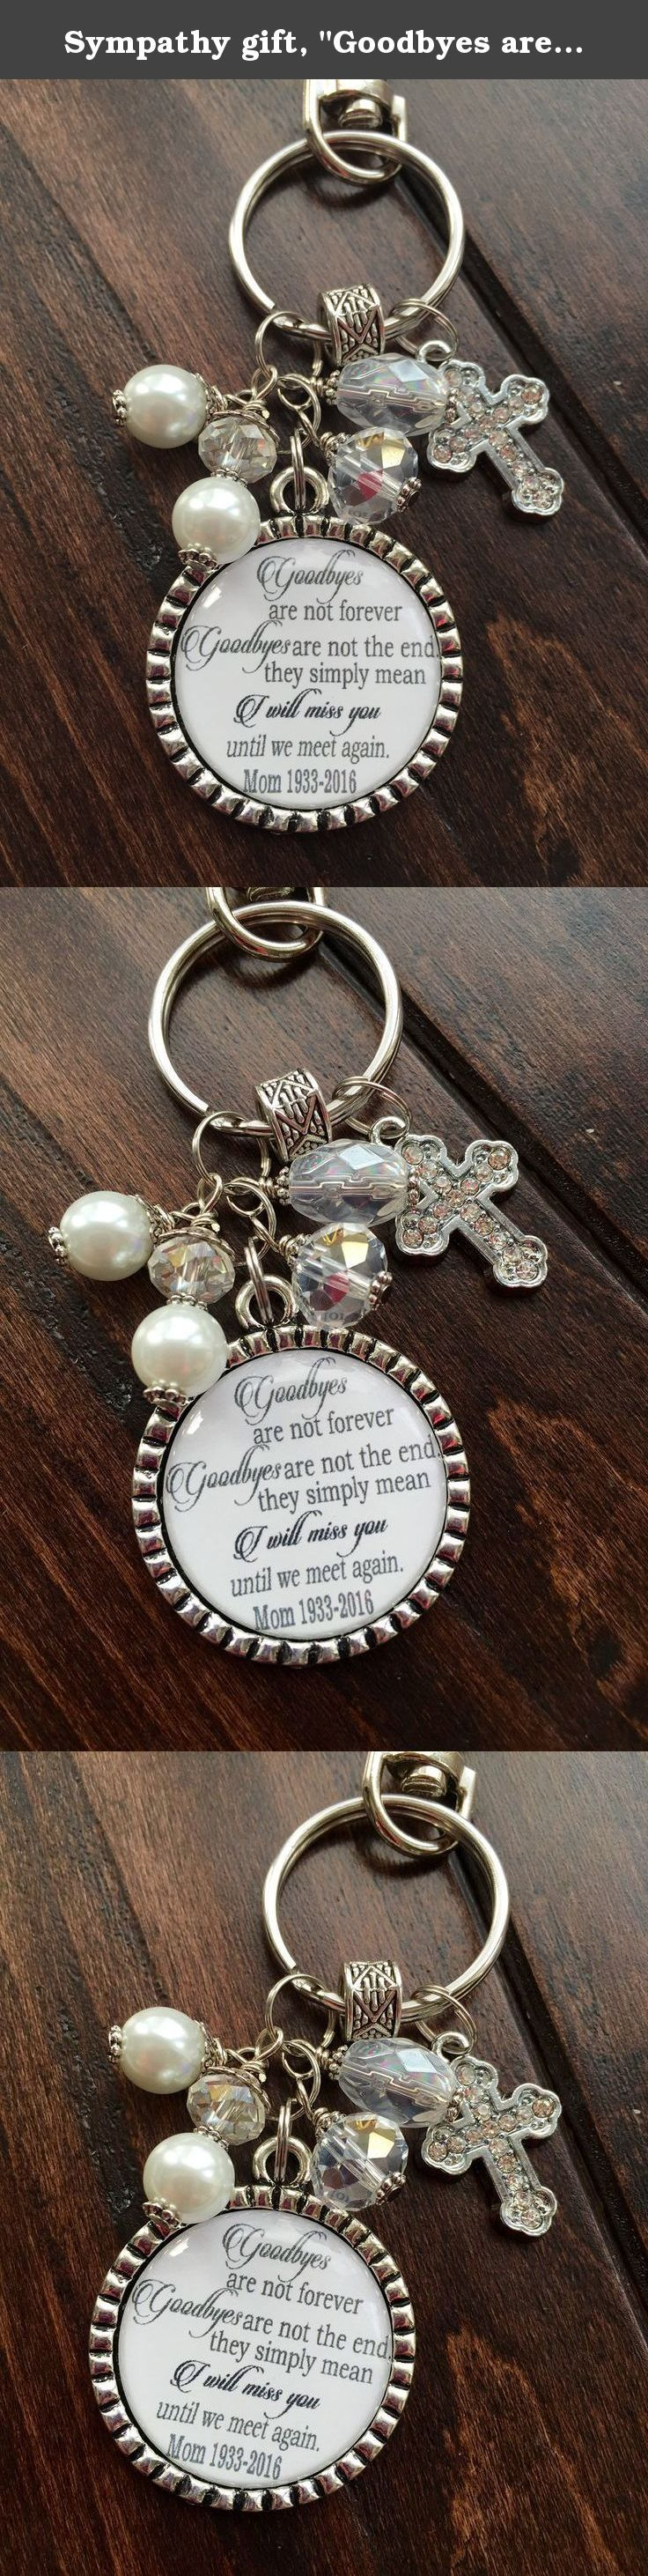 """Sympathy gift, """"Goodbyes are not forever Goodbyes are not the end, they simply mean I will miss you until we meet again"""" keychain son daughter wife husband remembrance beautiful quote custom. © 2016 Trendy Tz Beautiful bezel keychain or necklace all in a soft white design. With the quote """"Goodbyes are not forever Goodbyes are not the end, they simply mean I will miss you until we meet again"""", Name or initials and birth year and year of death. ***Please include in """"notes to seller""""*** 1…"""